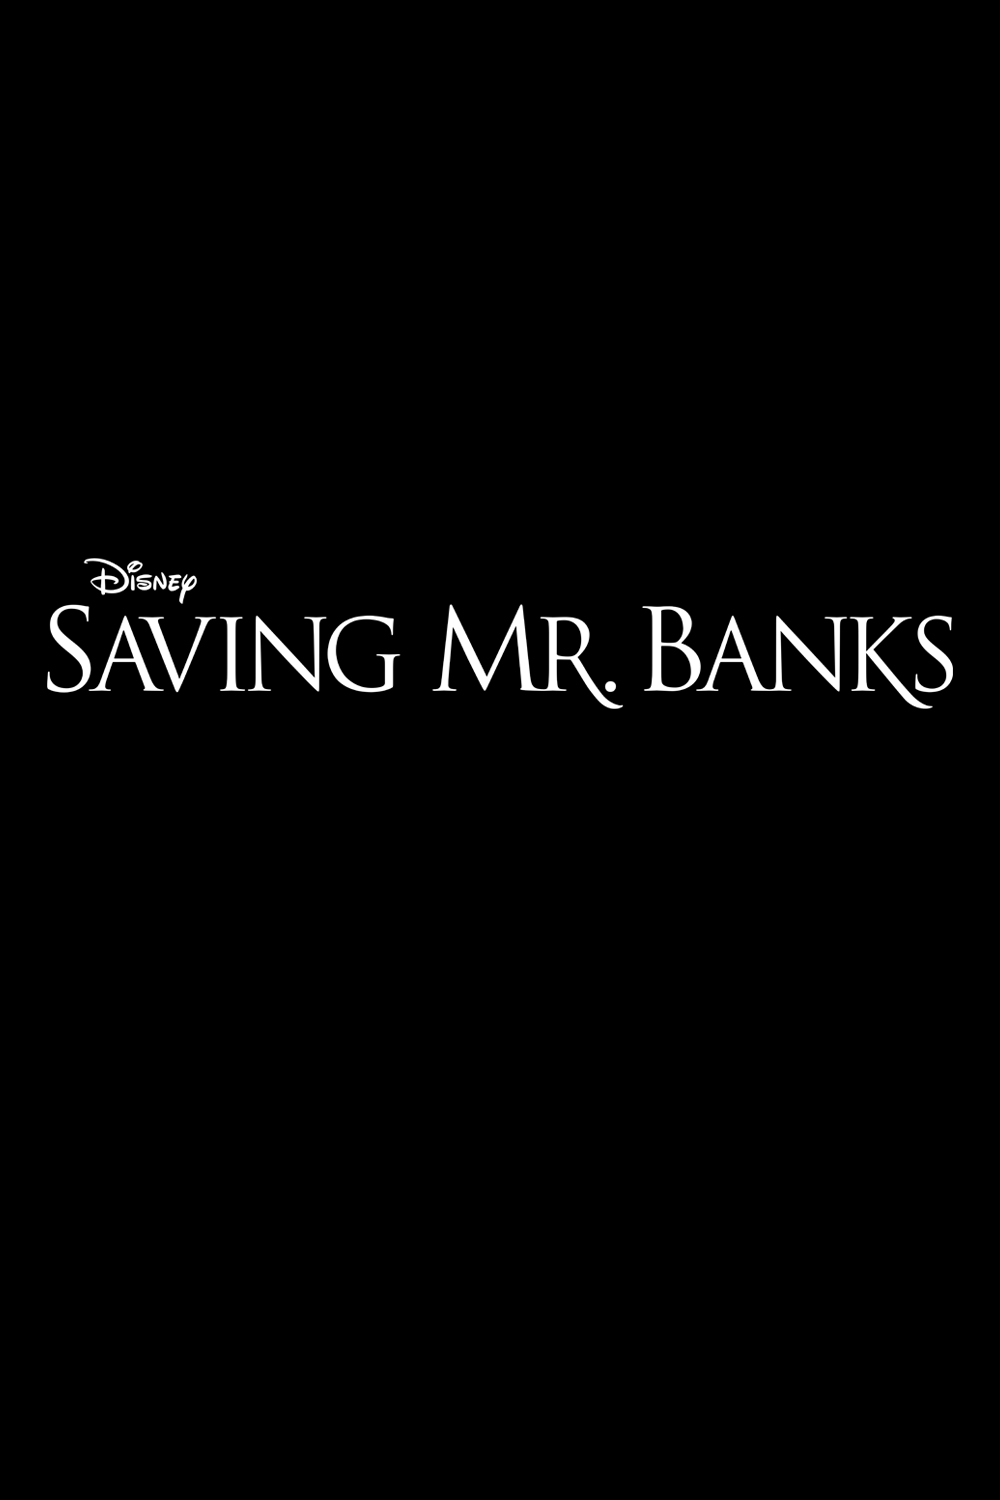 disney saving mr banks